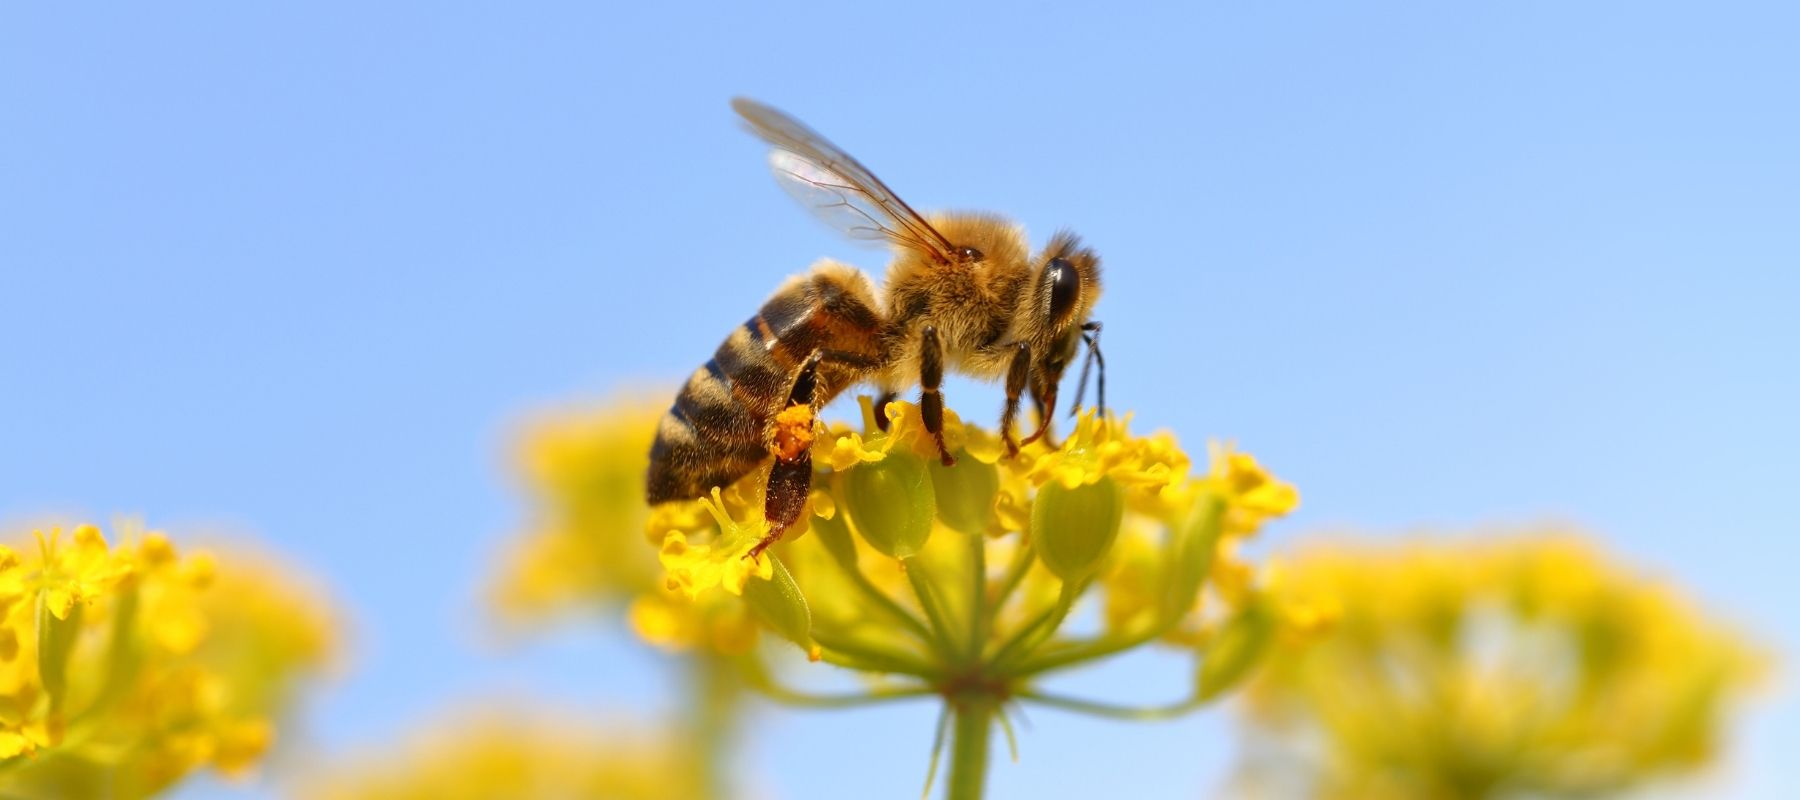 Honey Bee Pollinating a Yellow Flower